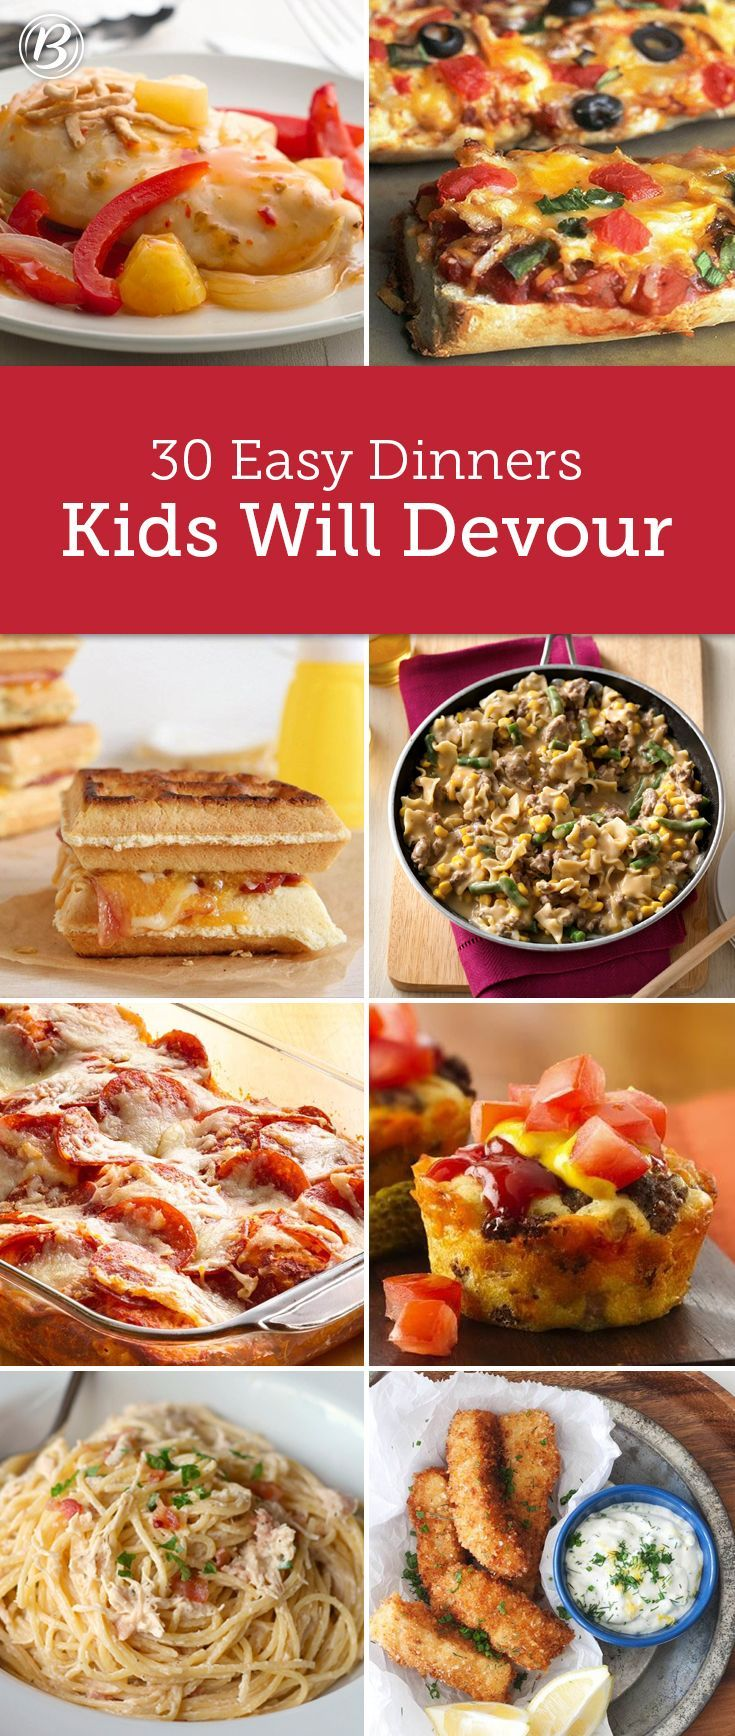 30 Easy Dinners Kids Will Devour Picky Eaters Meals And